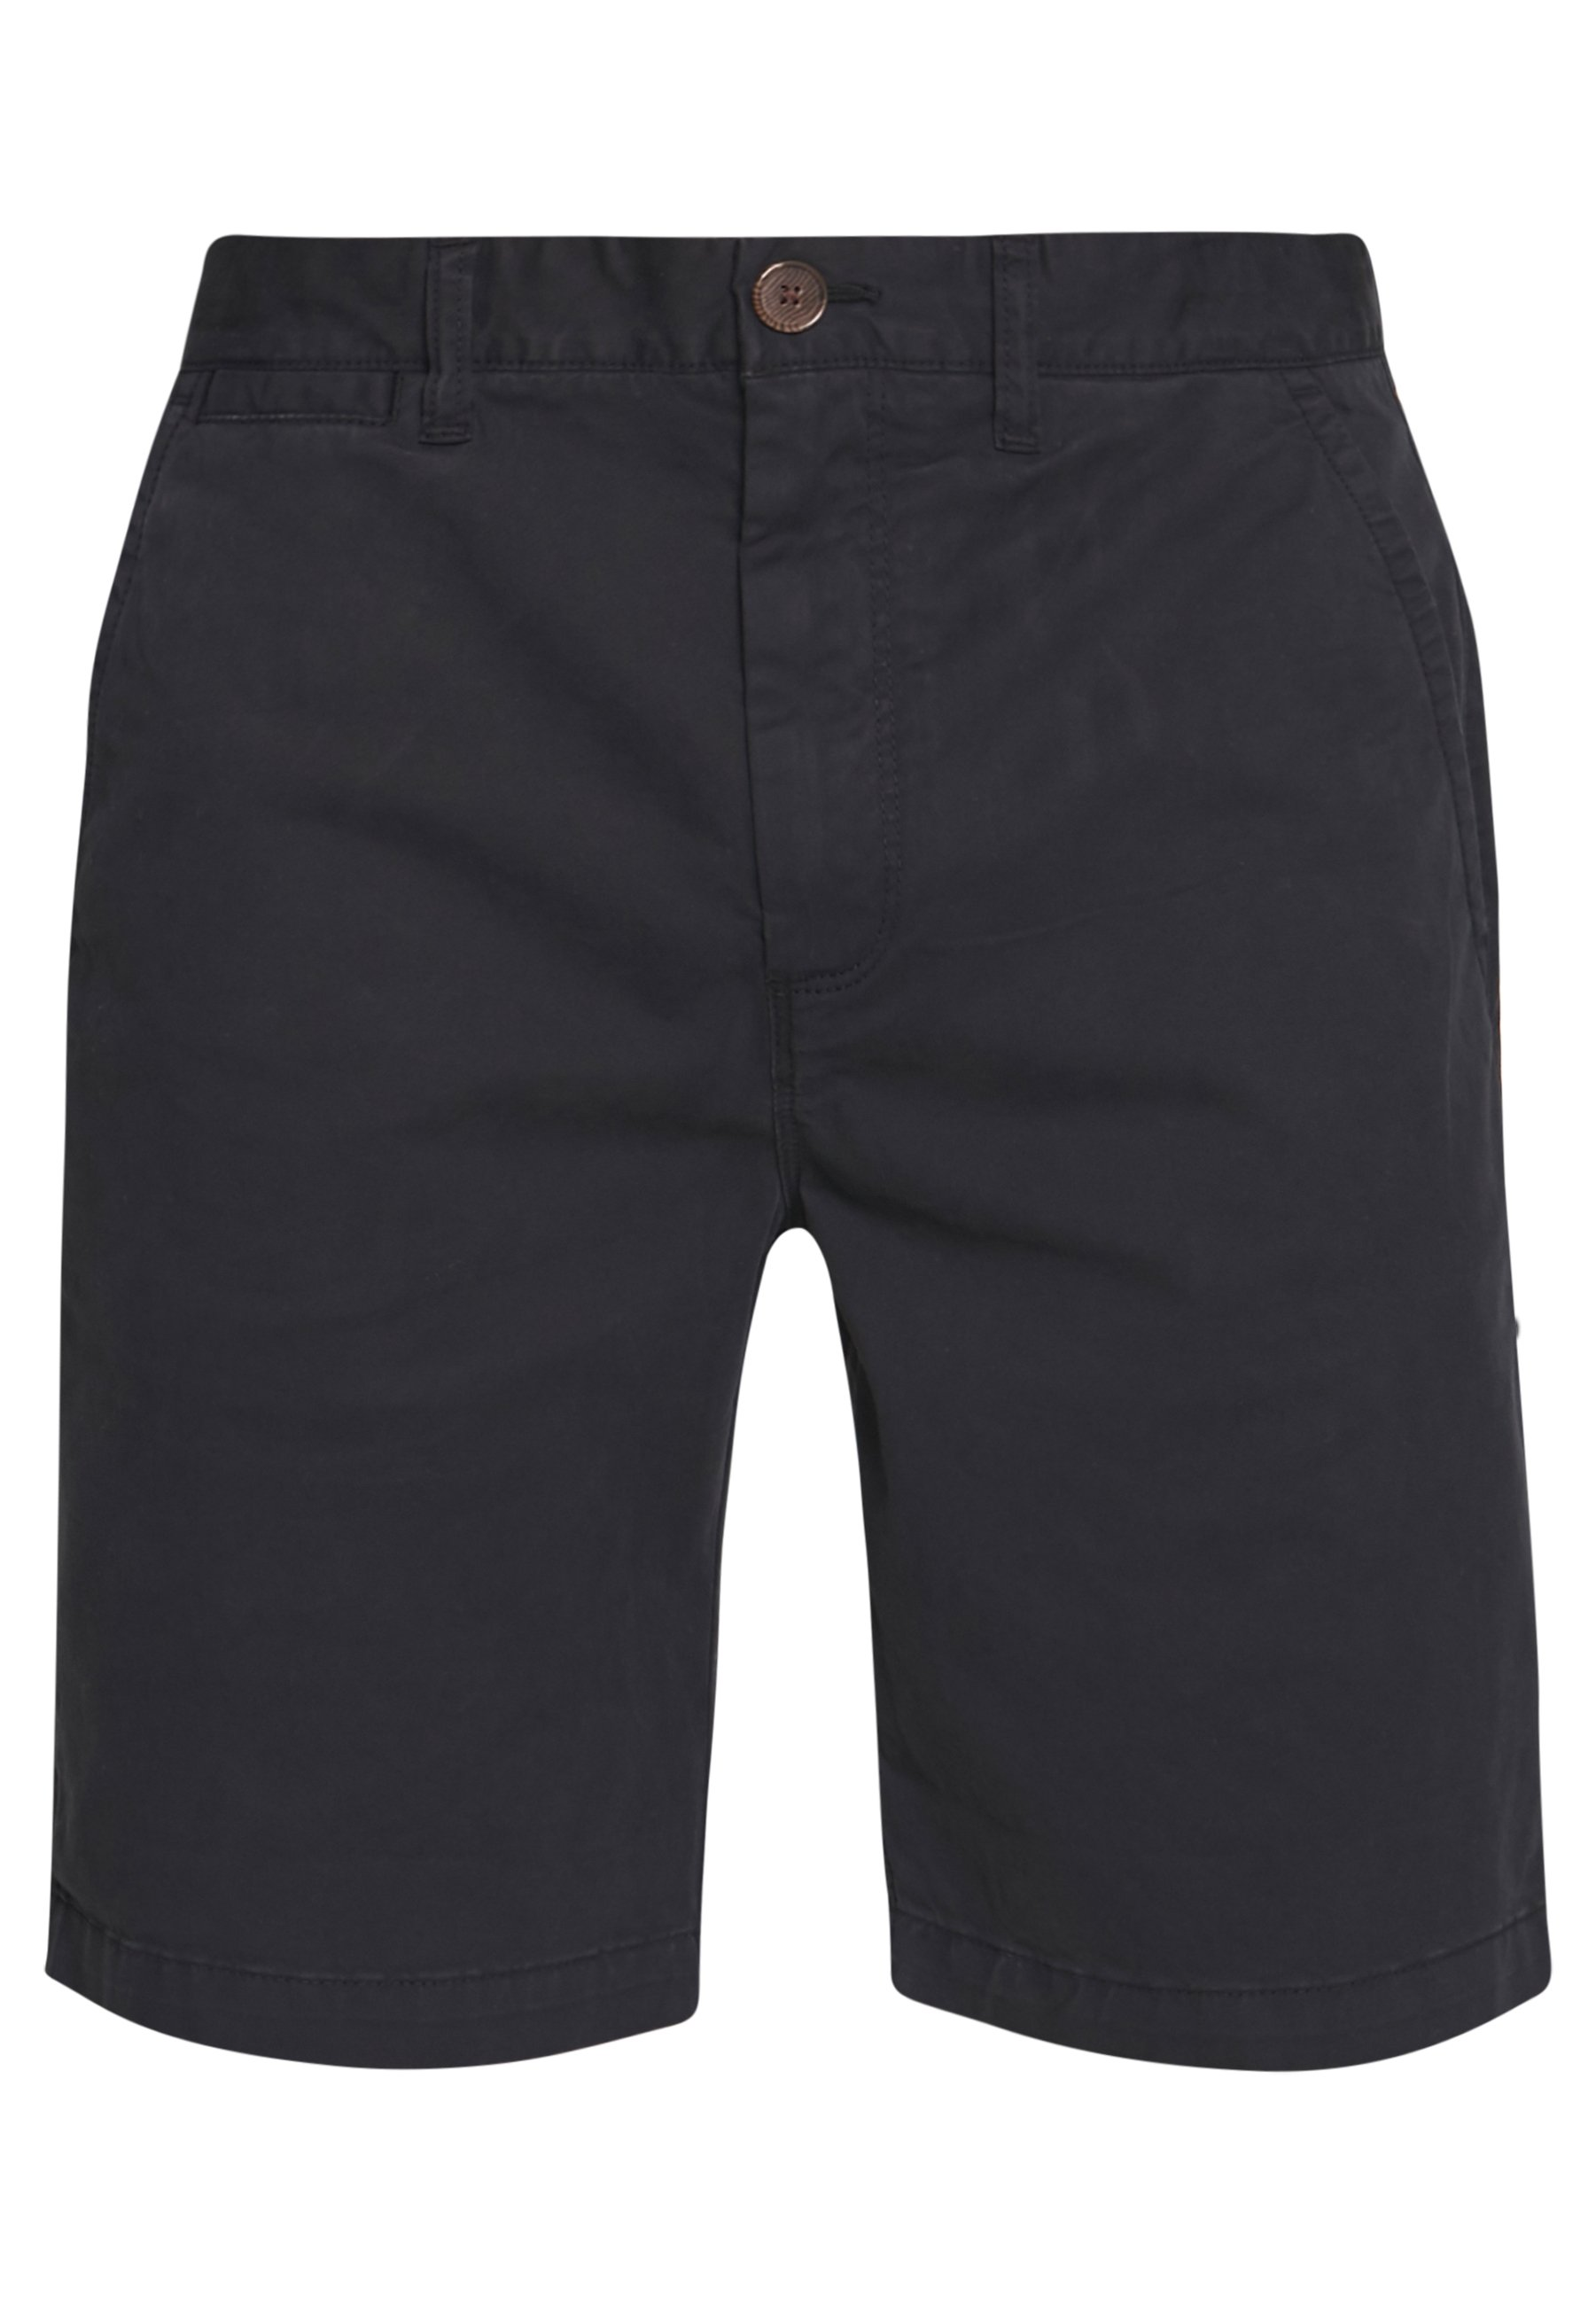 INTERNATIONAL Short midnight navy